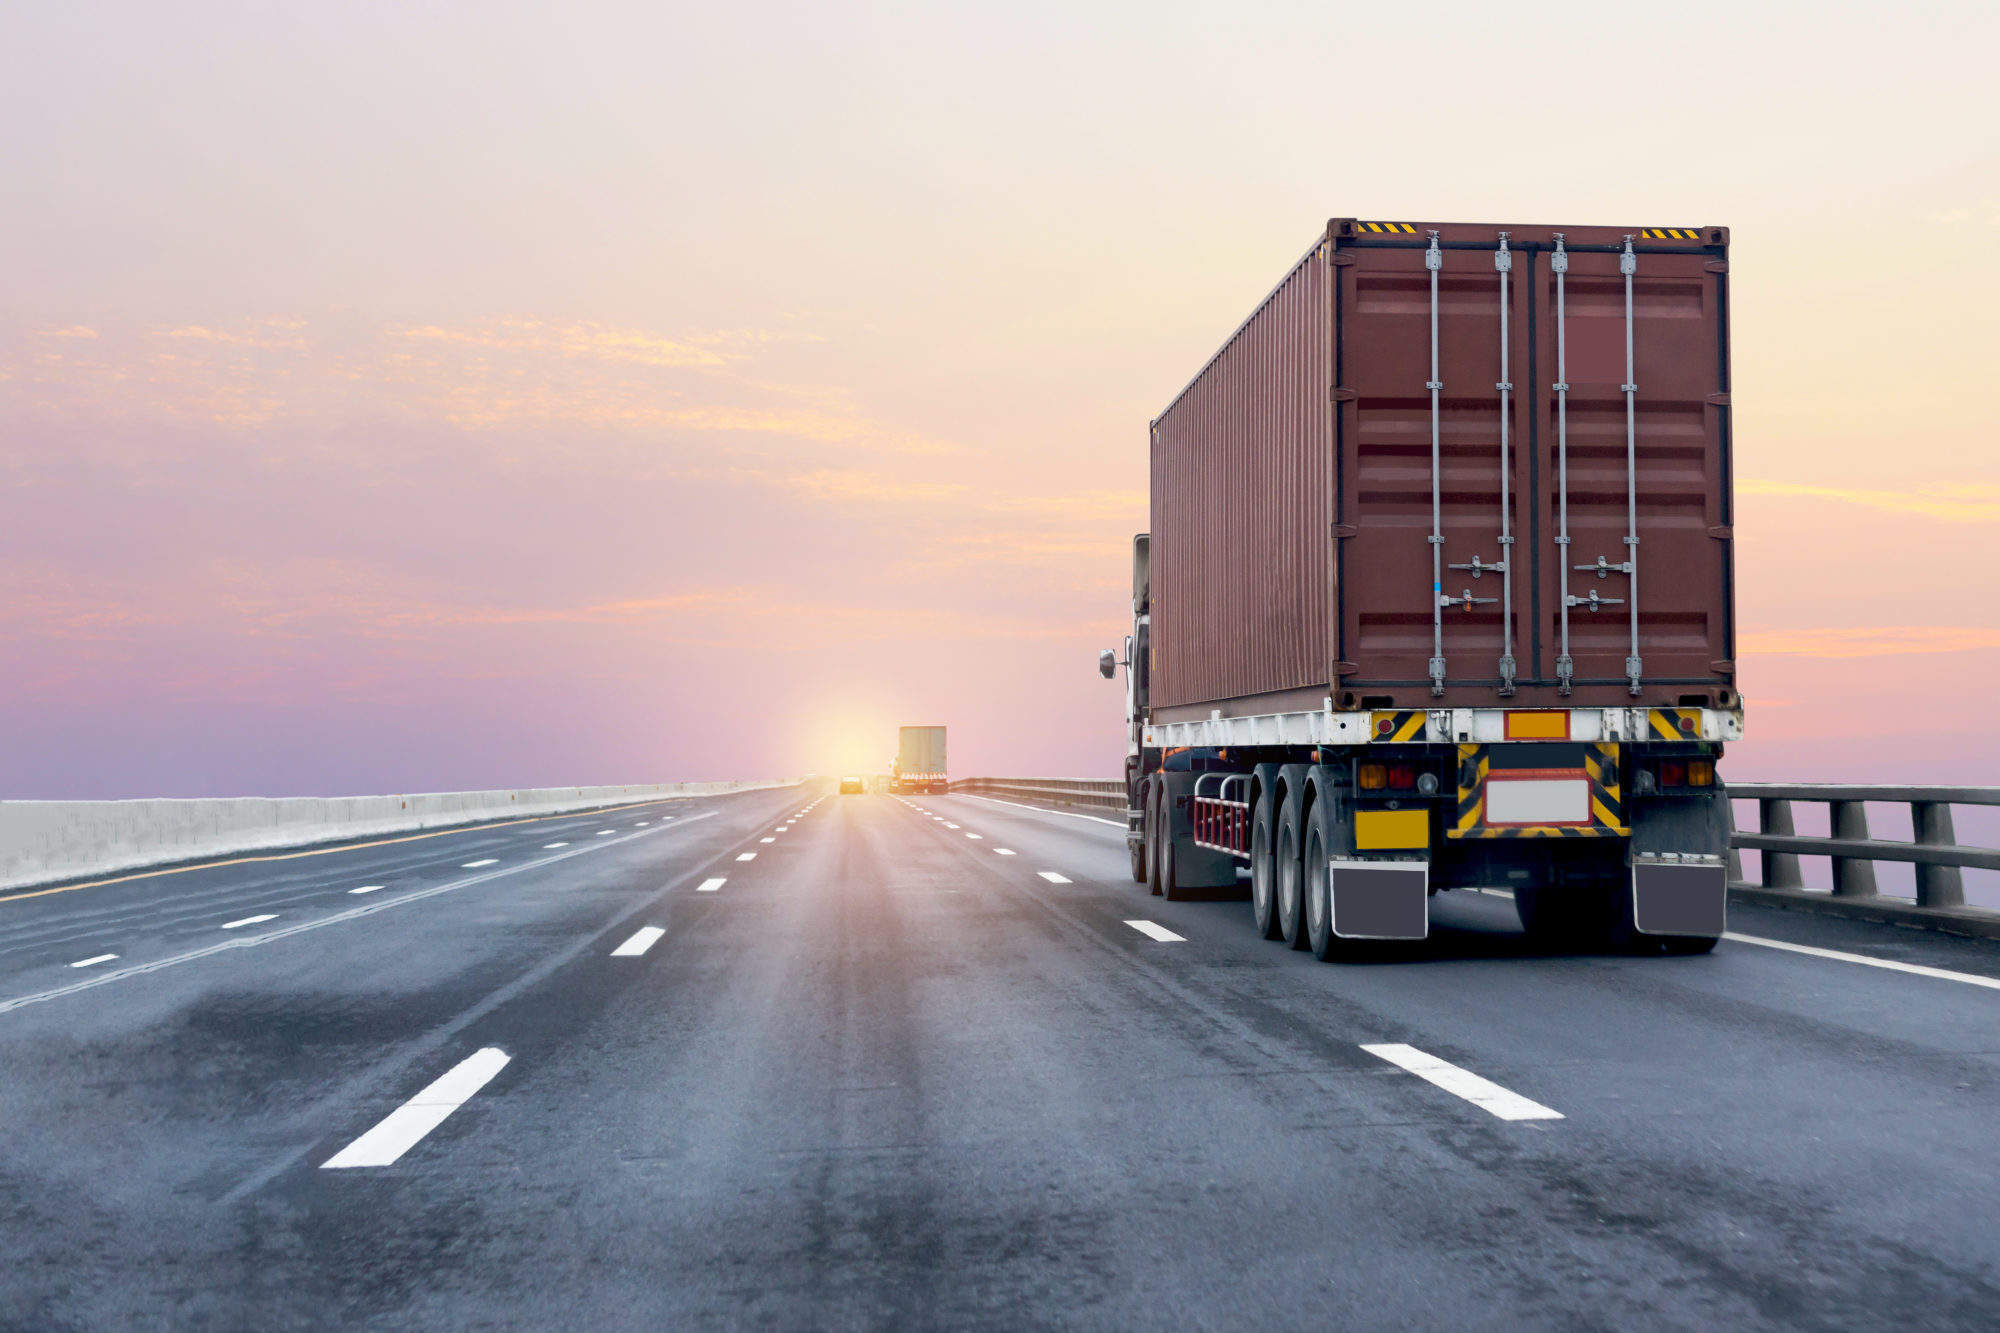 Brexit technical notices advise businesses to use customs broker in 'no deal' scenario